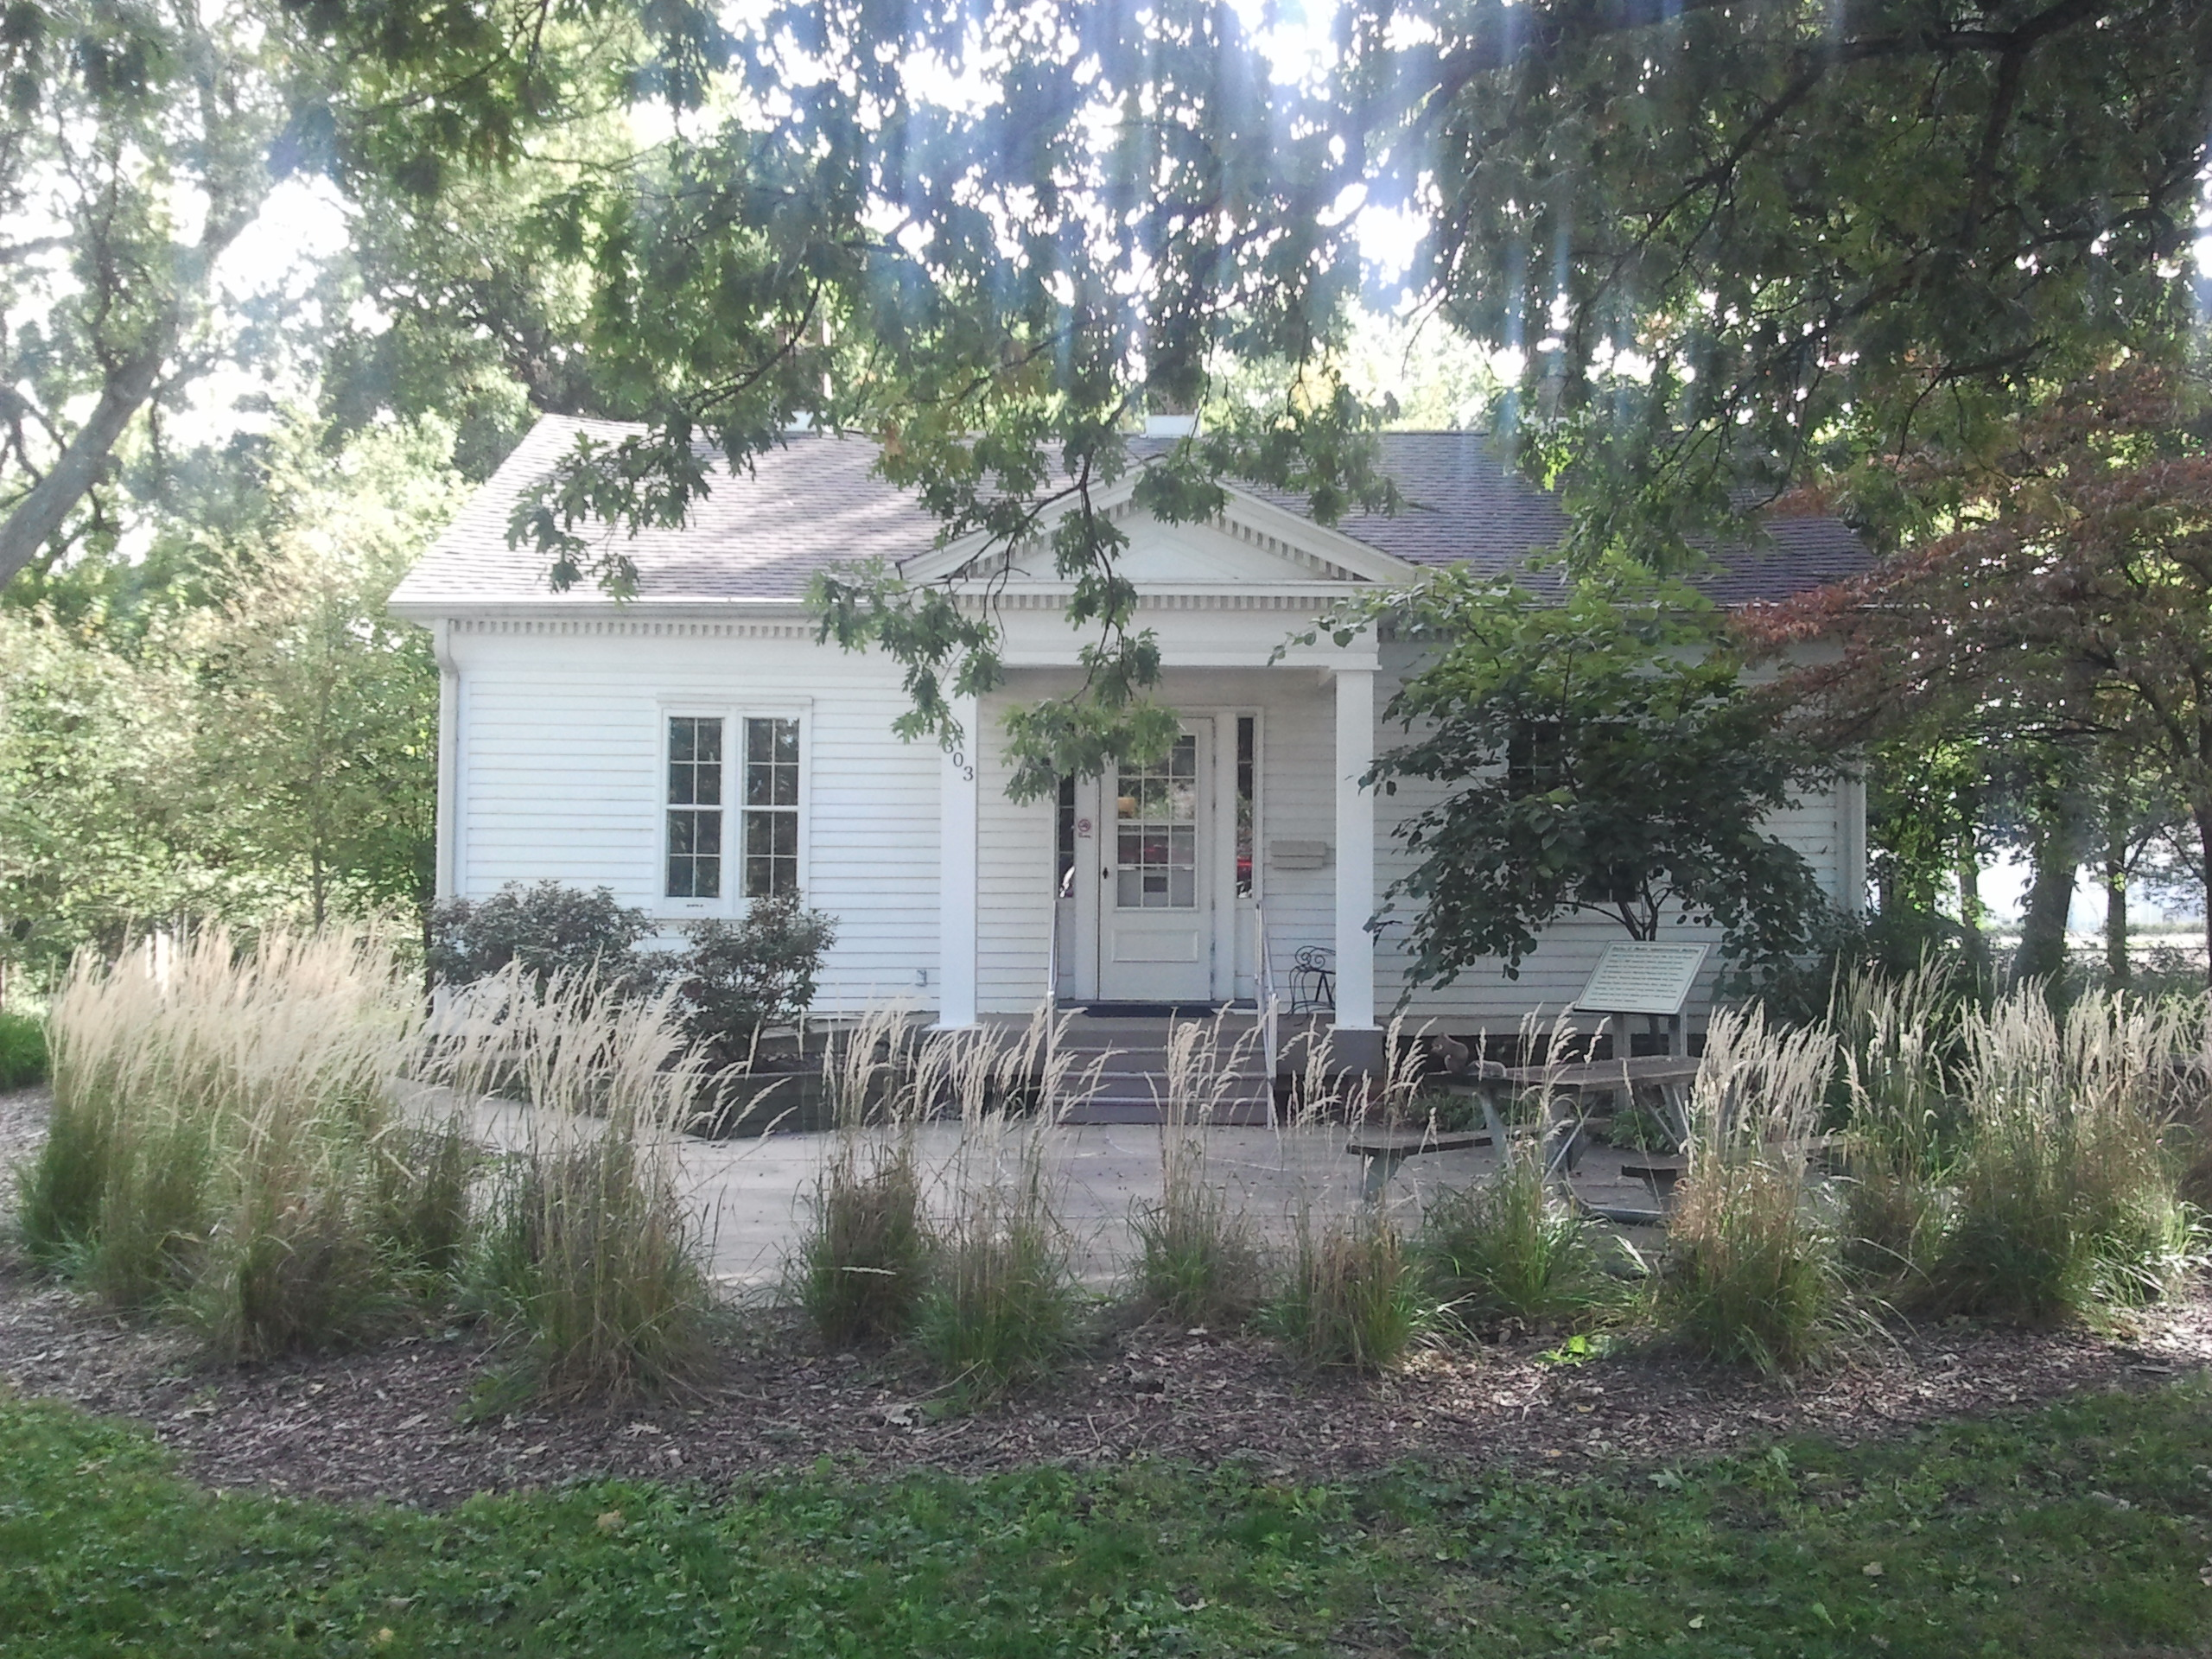 filegreek revival cottage 2012 09 30 15 07 22 - Greek Revival Cottage